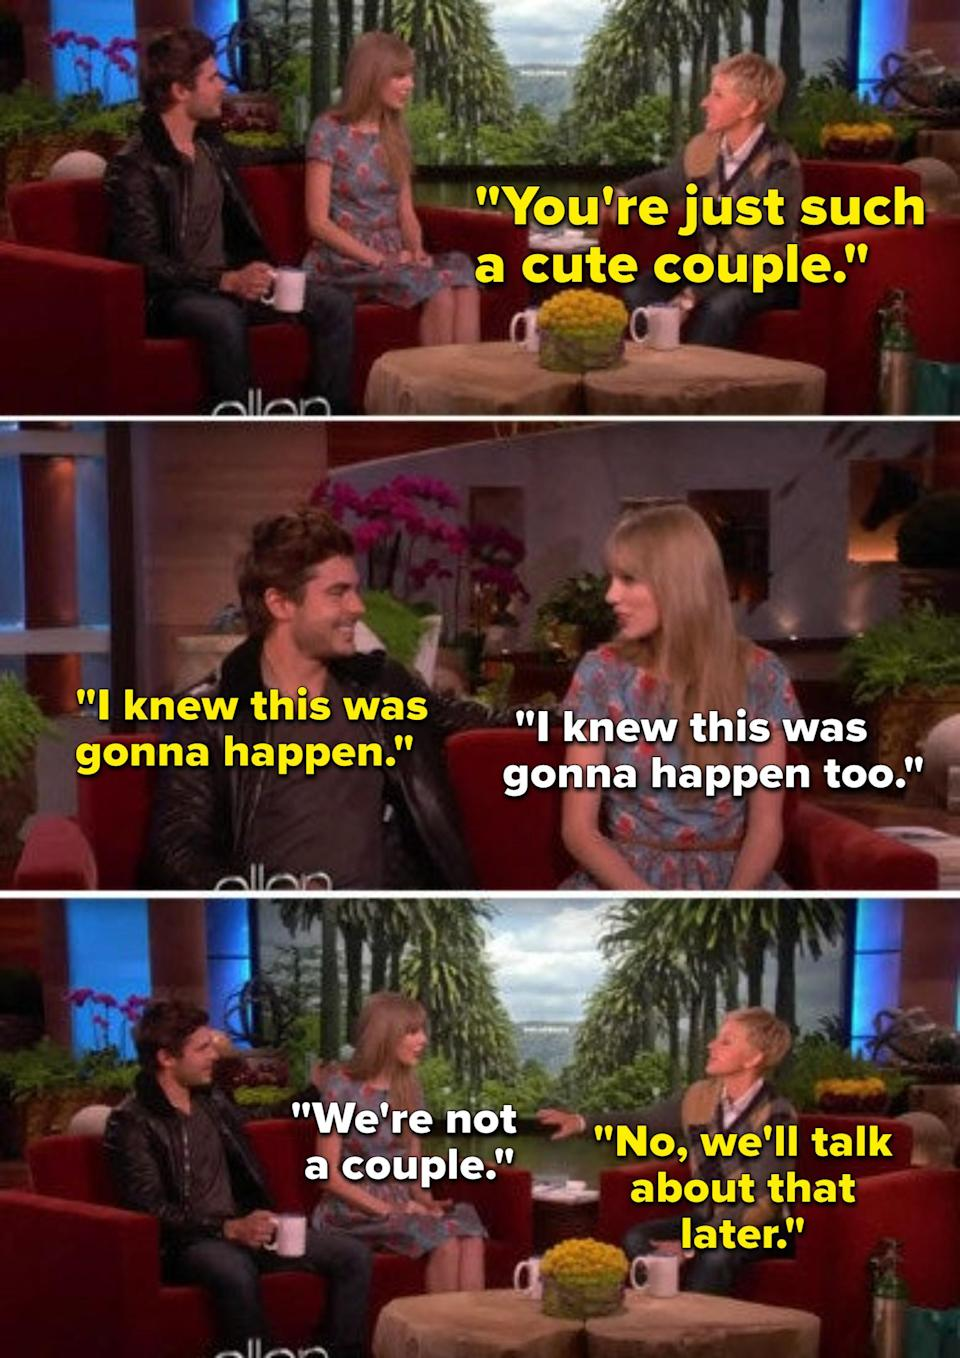 Ellen telling Taylor Swift and Zac Efron they're a cute couple even though they weren't dating